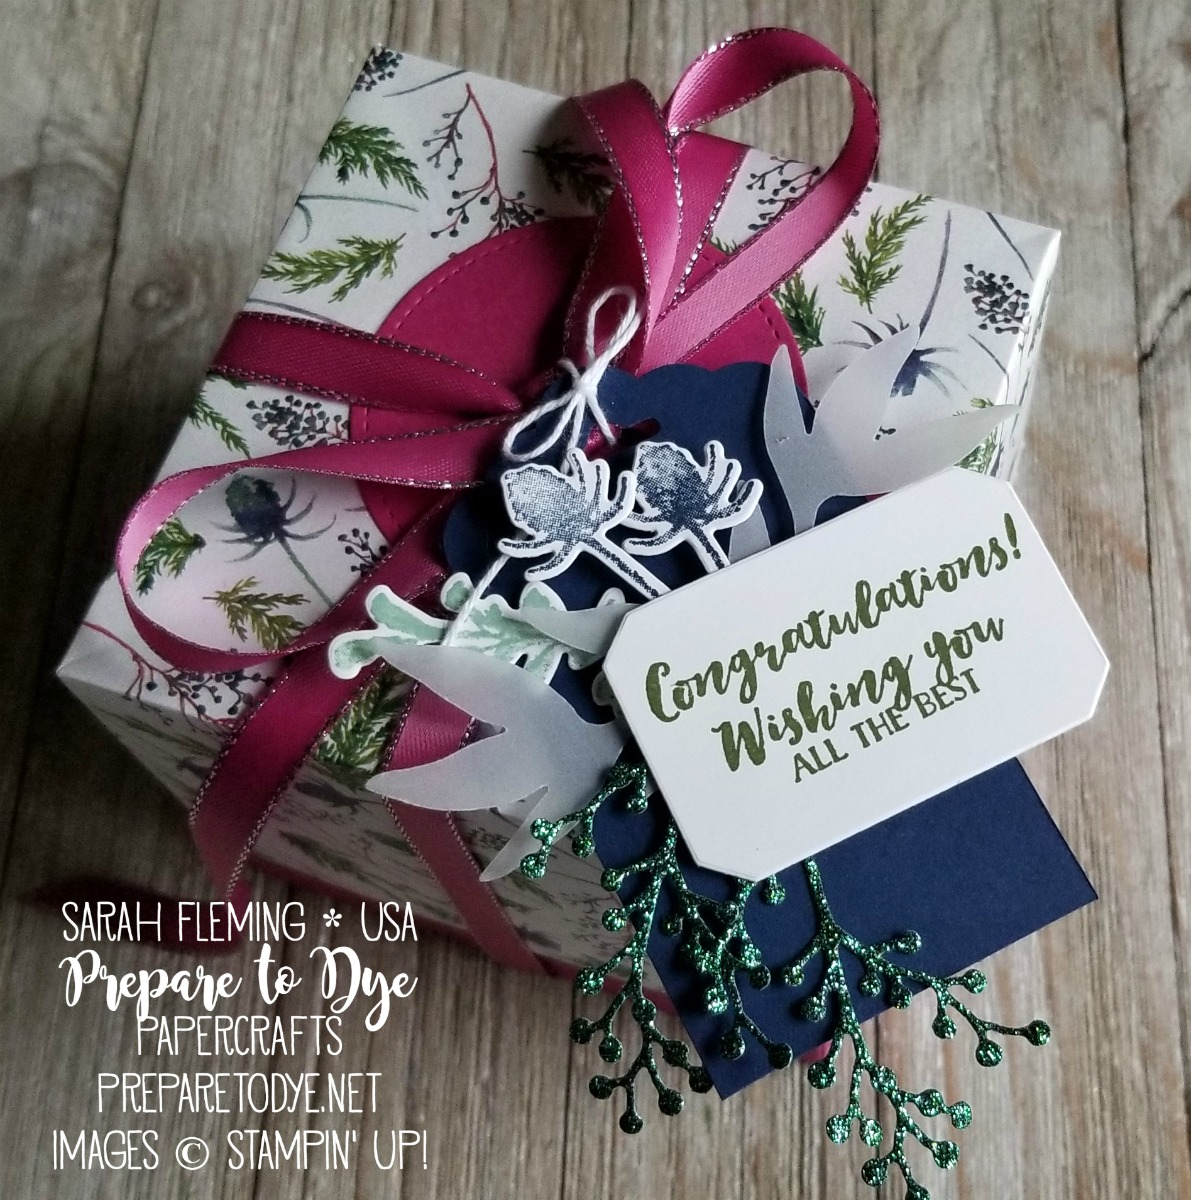 Stampin' Up! handmade wedding gift tag using First Frost bundle with Frosted Bouquet Framelits dies, Joyous Noel Glimmer Paper, and Scalloped Tag Topper Punch - Sarah Fleming - Prepare to Dye Papercrafts